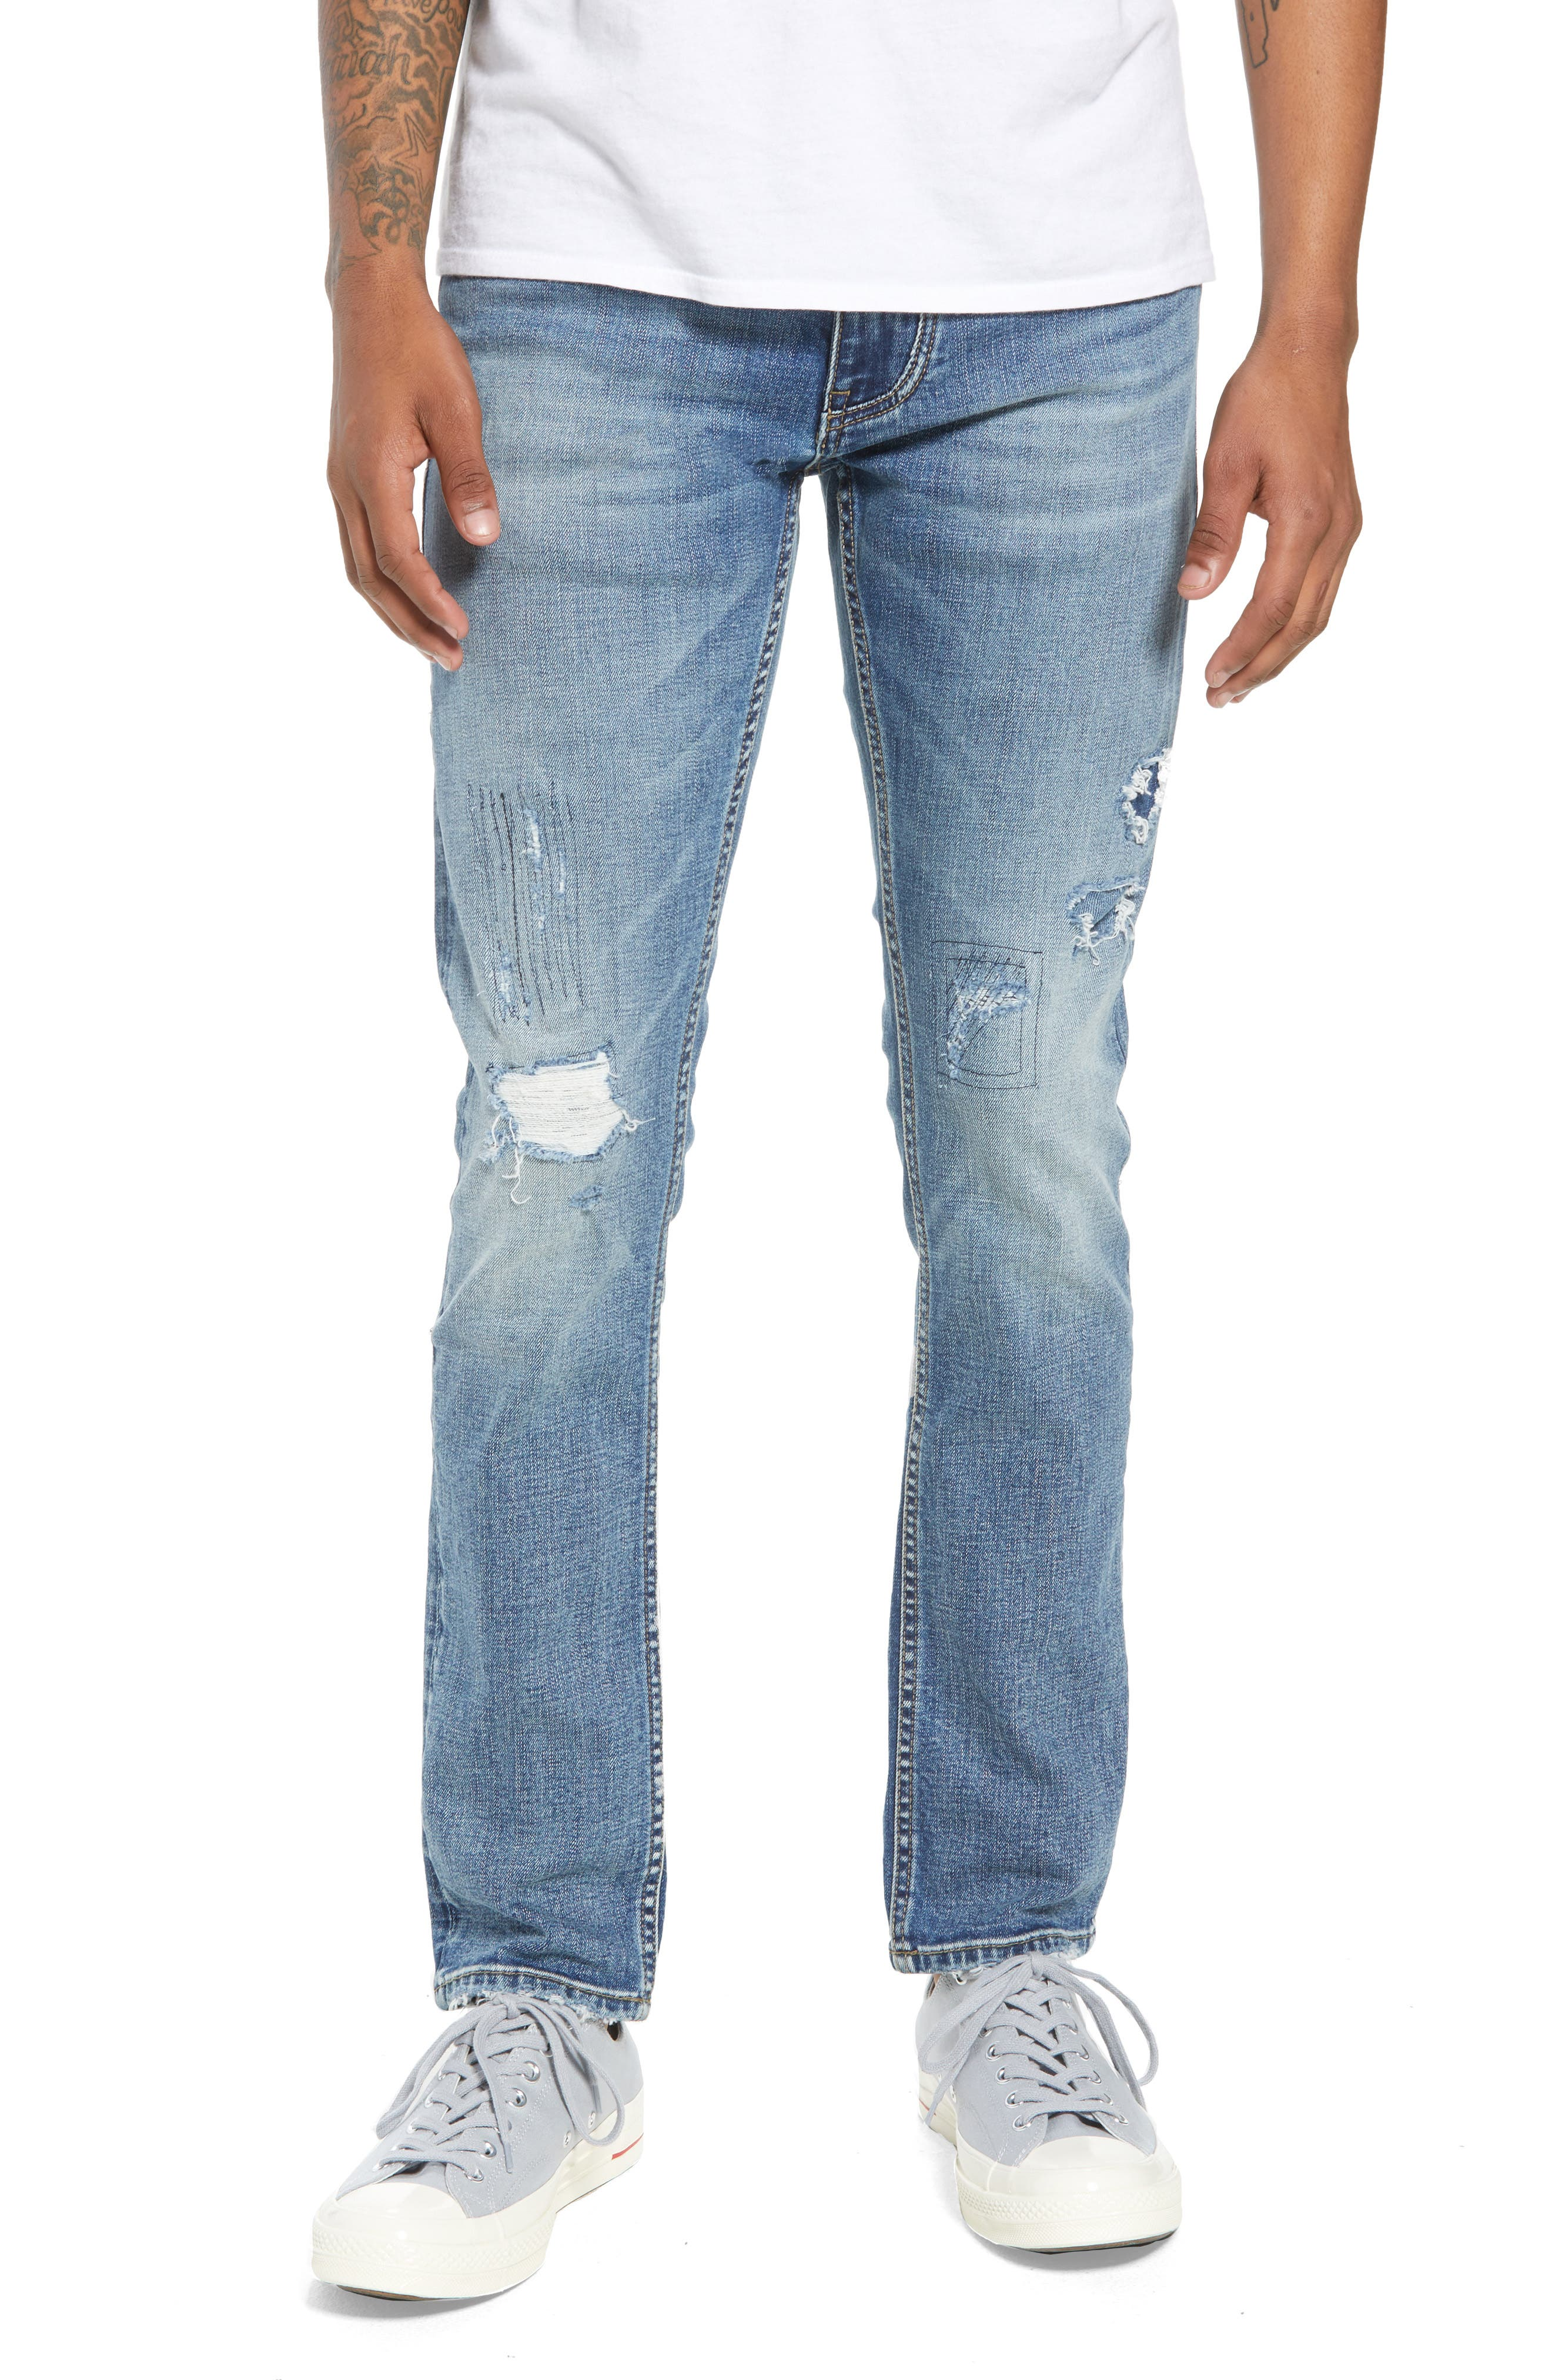 Wooster Slim Fit Jeans,                         Main,                         color, LION NIGHT